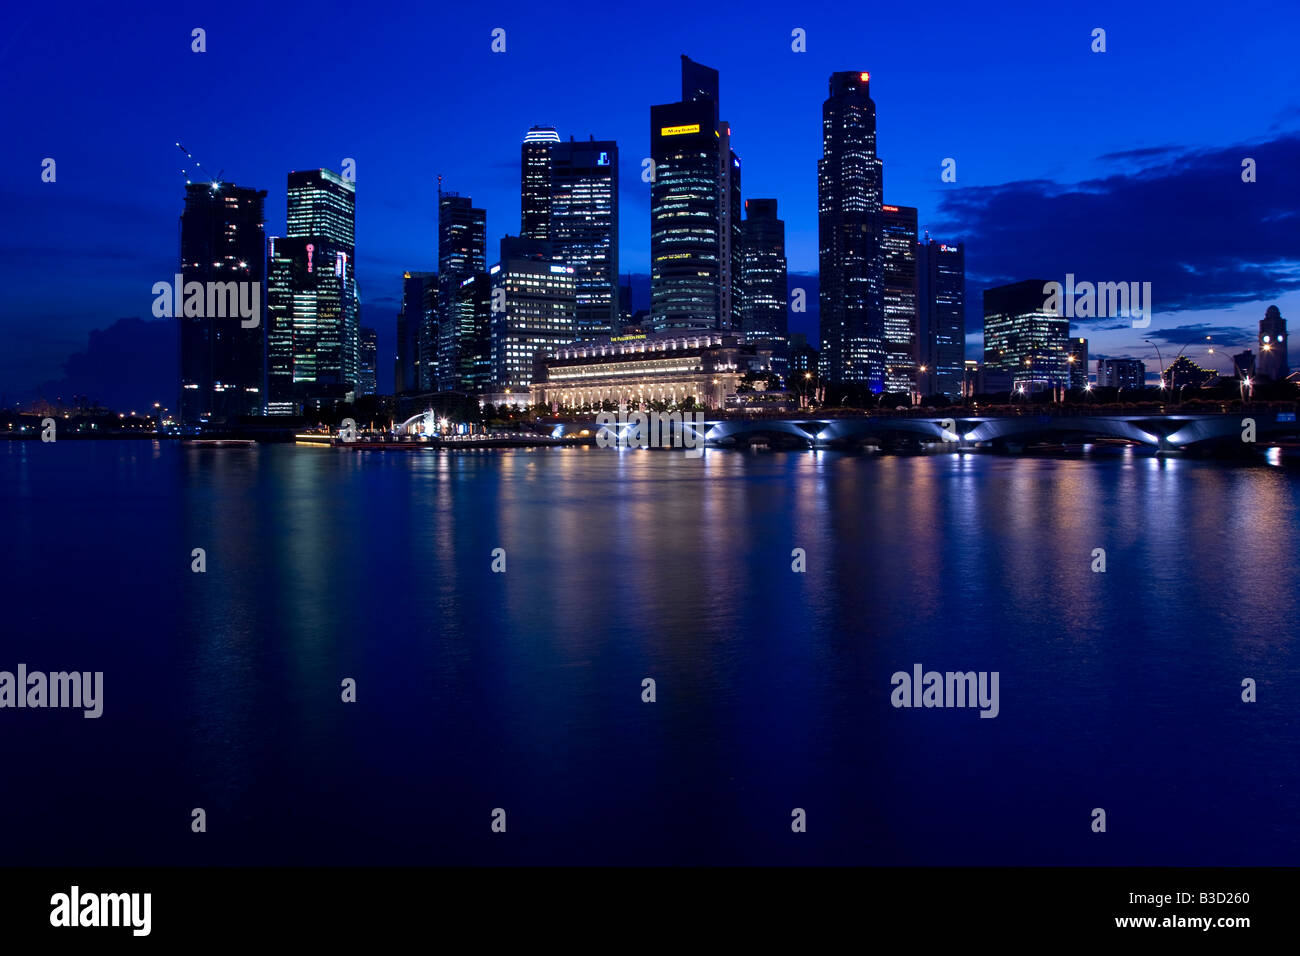 Singapore Skyline at Night - Stock Image